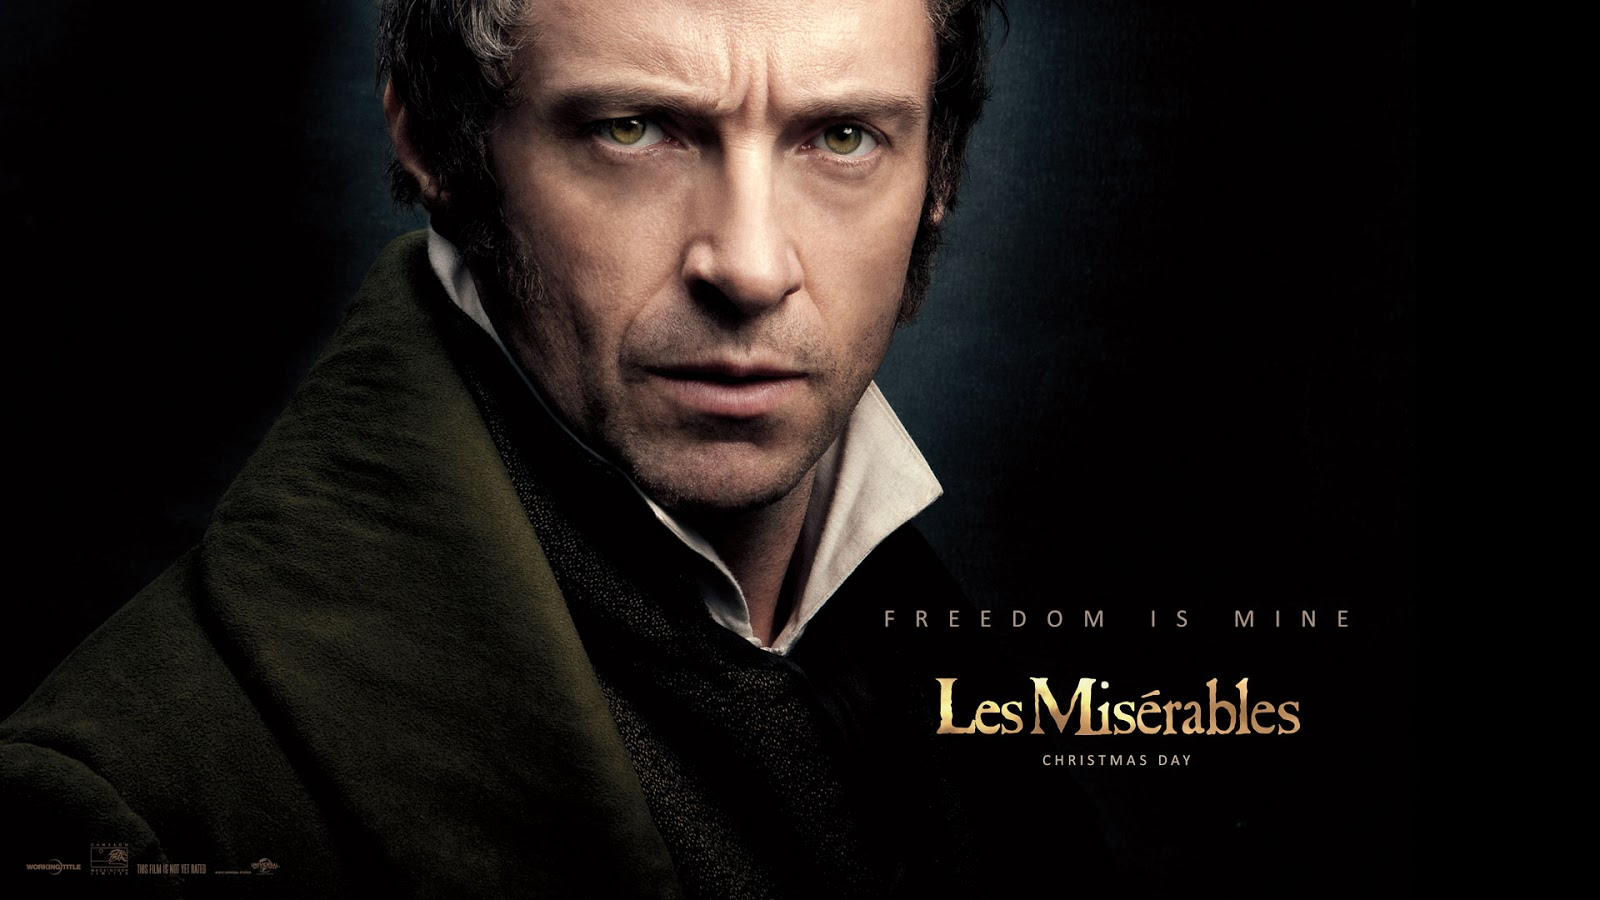 http://4.bp.blogspot.com/-4SlNpCxuI2c/UNoVQflyrgI/AAAAAAAAQaw/3SSoFTxLmvY/s1600/Les-Miserables-Wallpapers-les-miserables-2012-movie-32692734-1920-1080.jpg